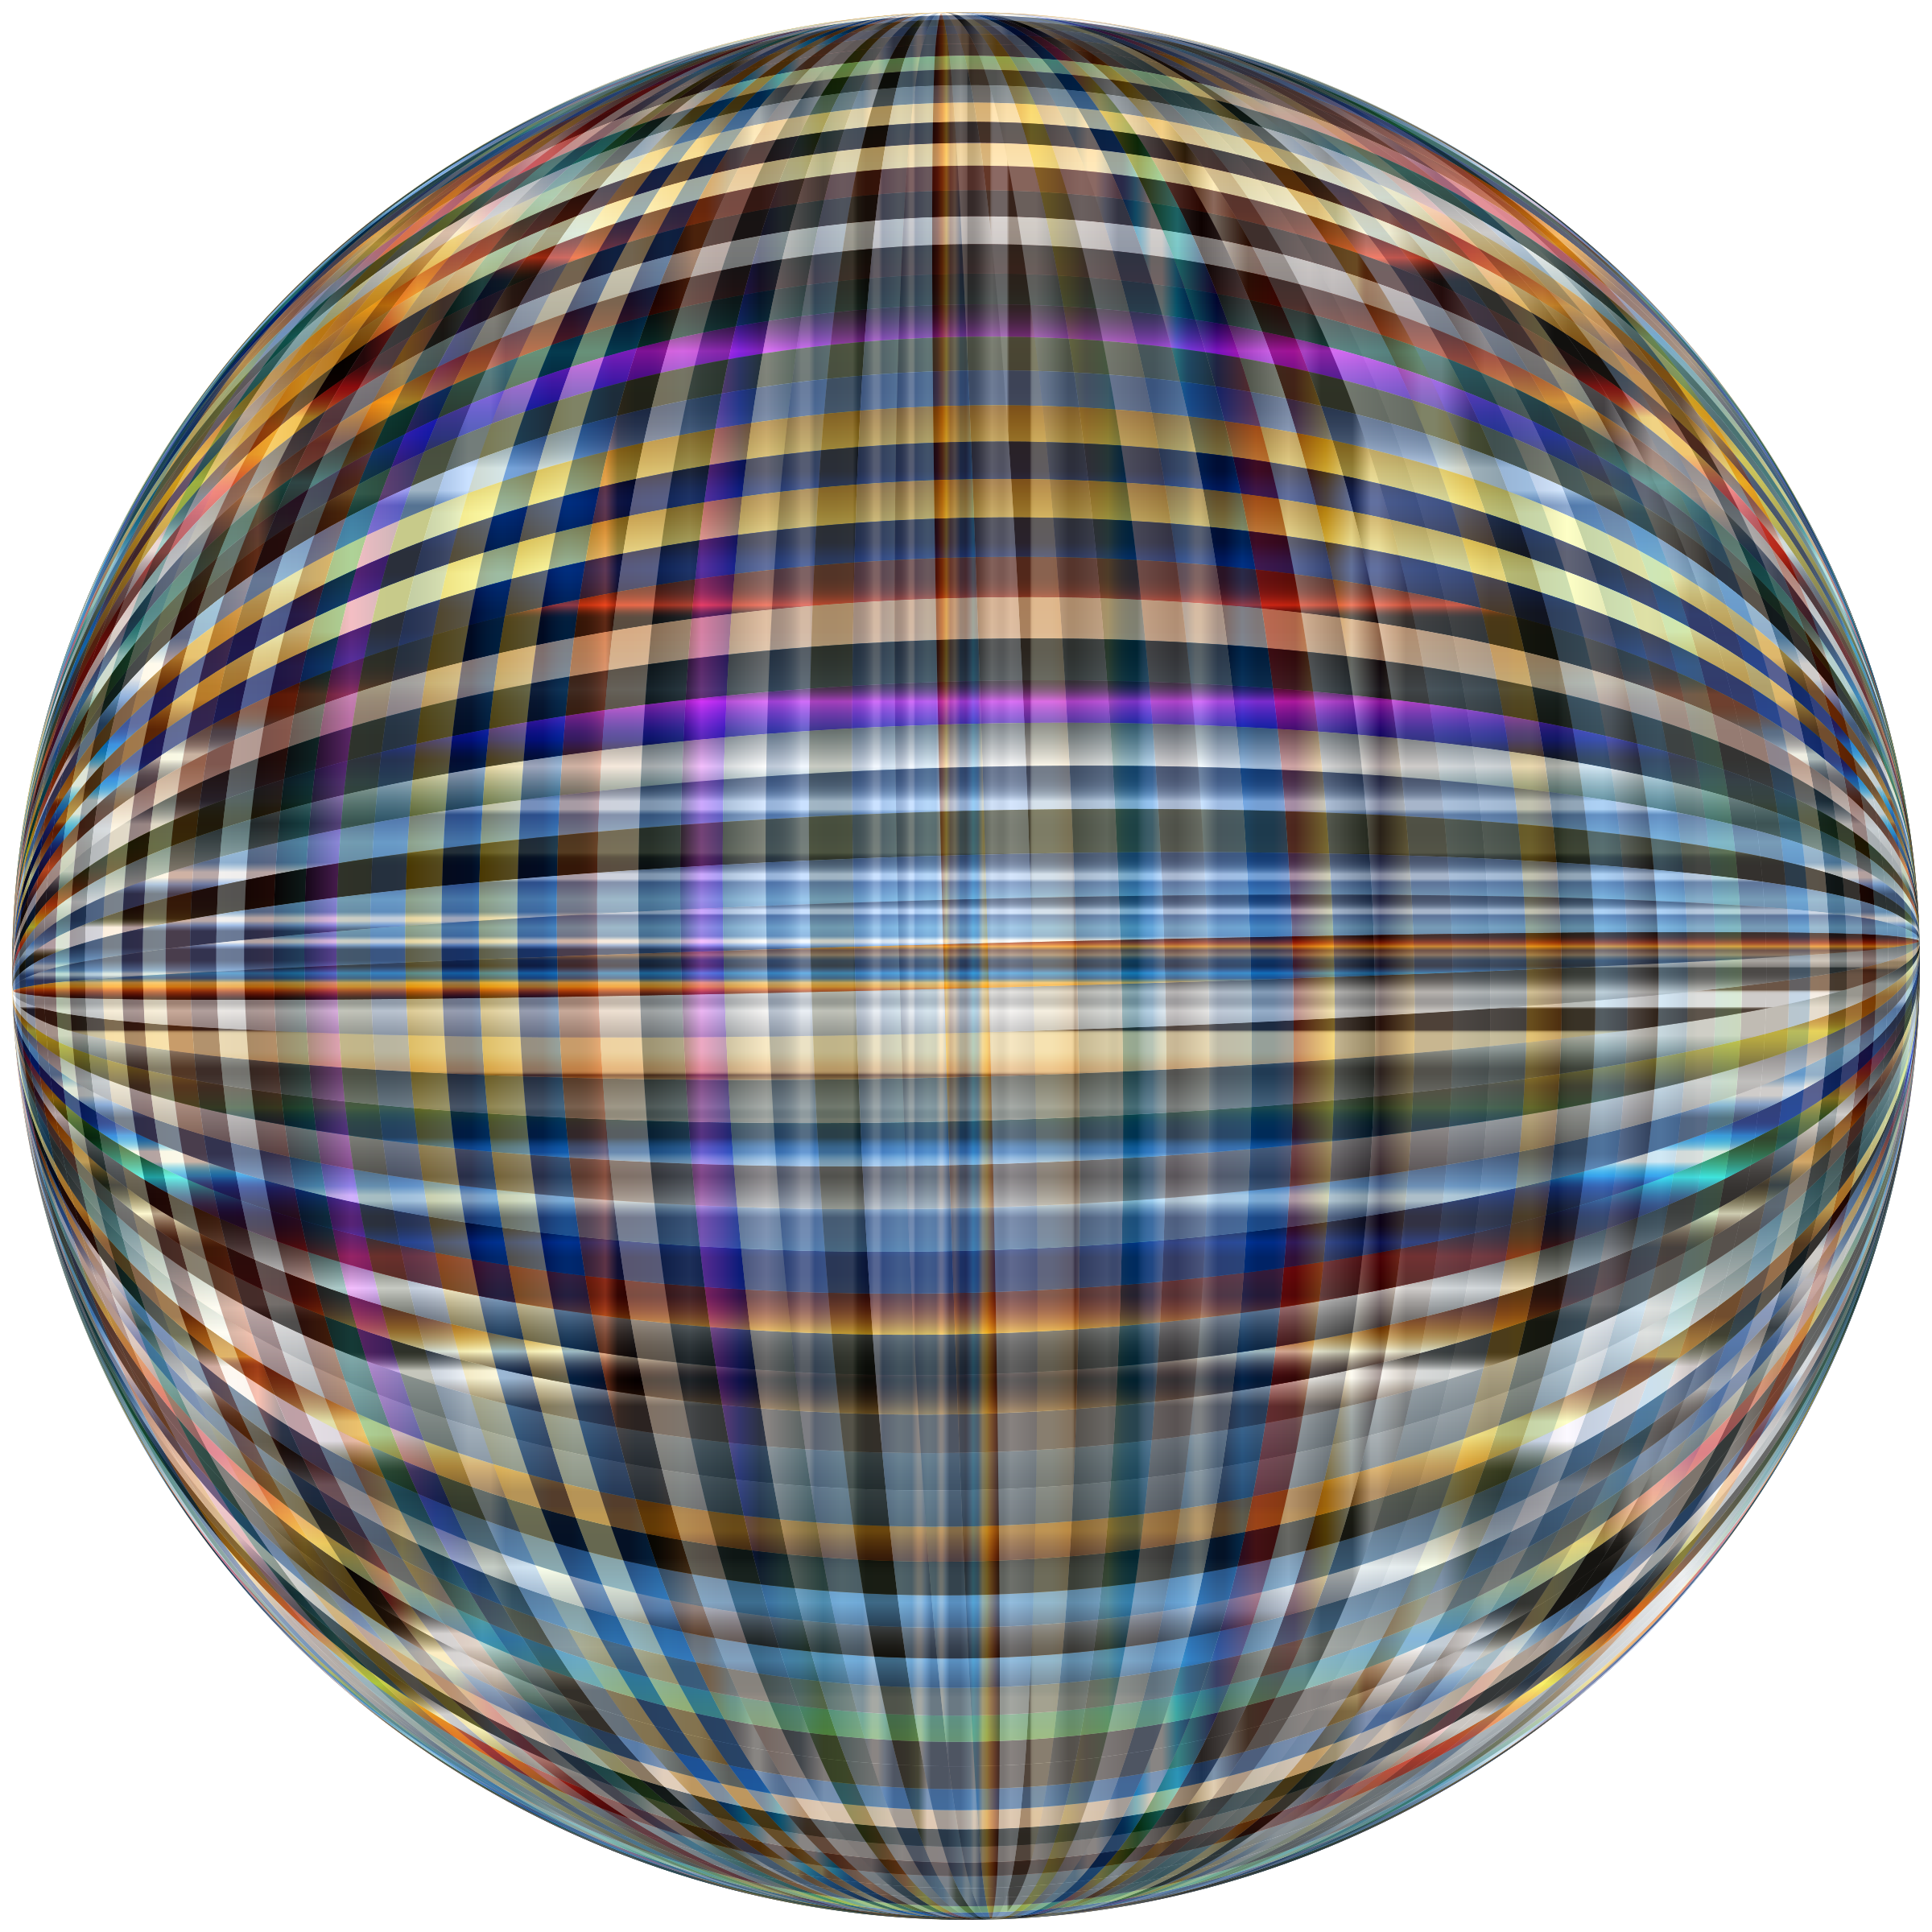 Chromatic Orb by GDJ